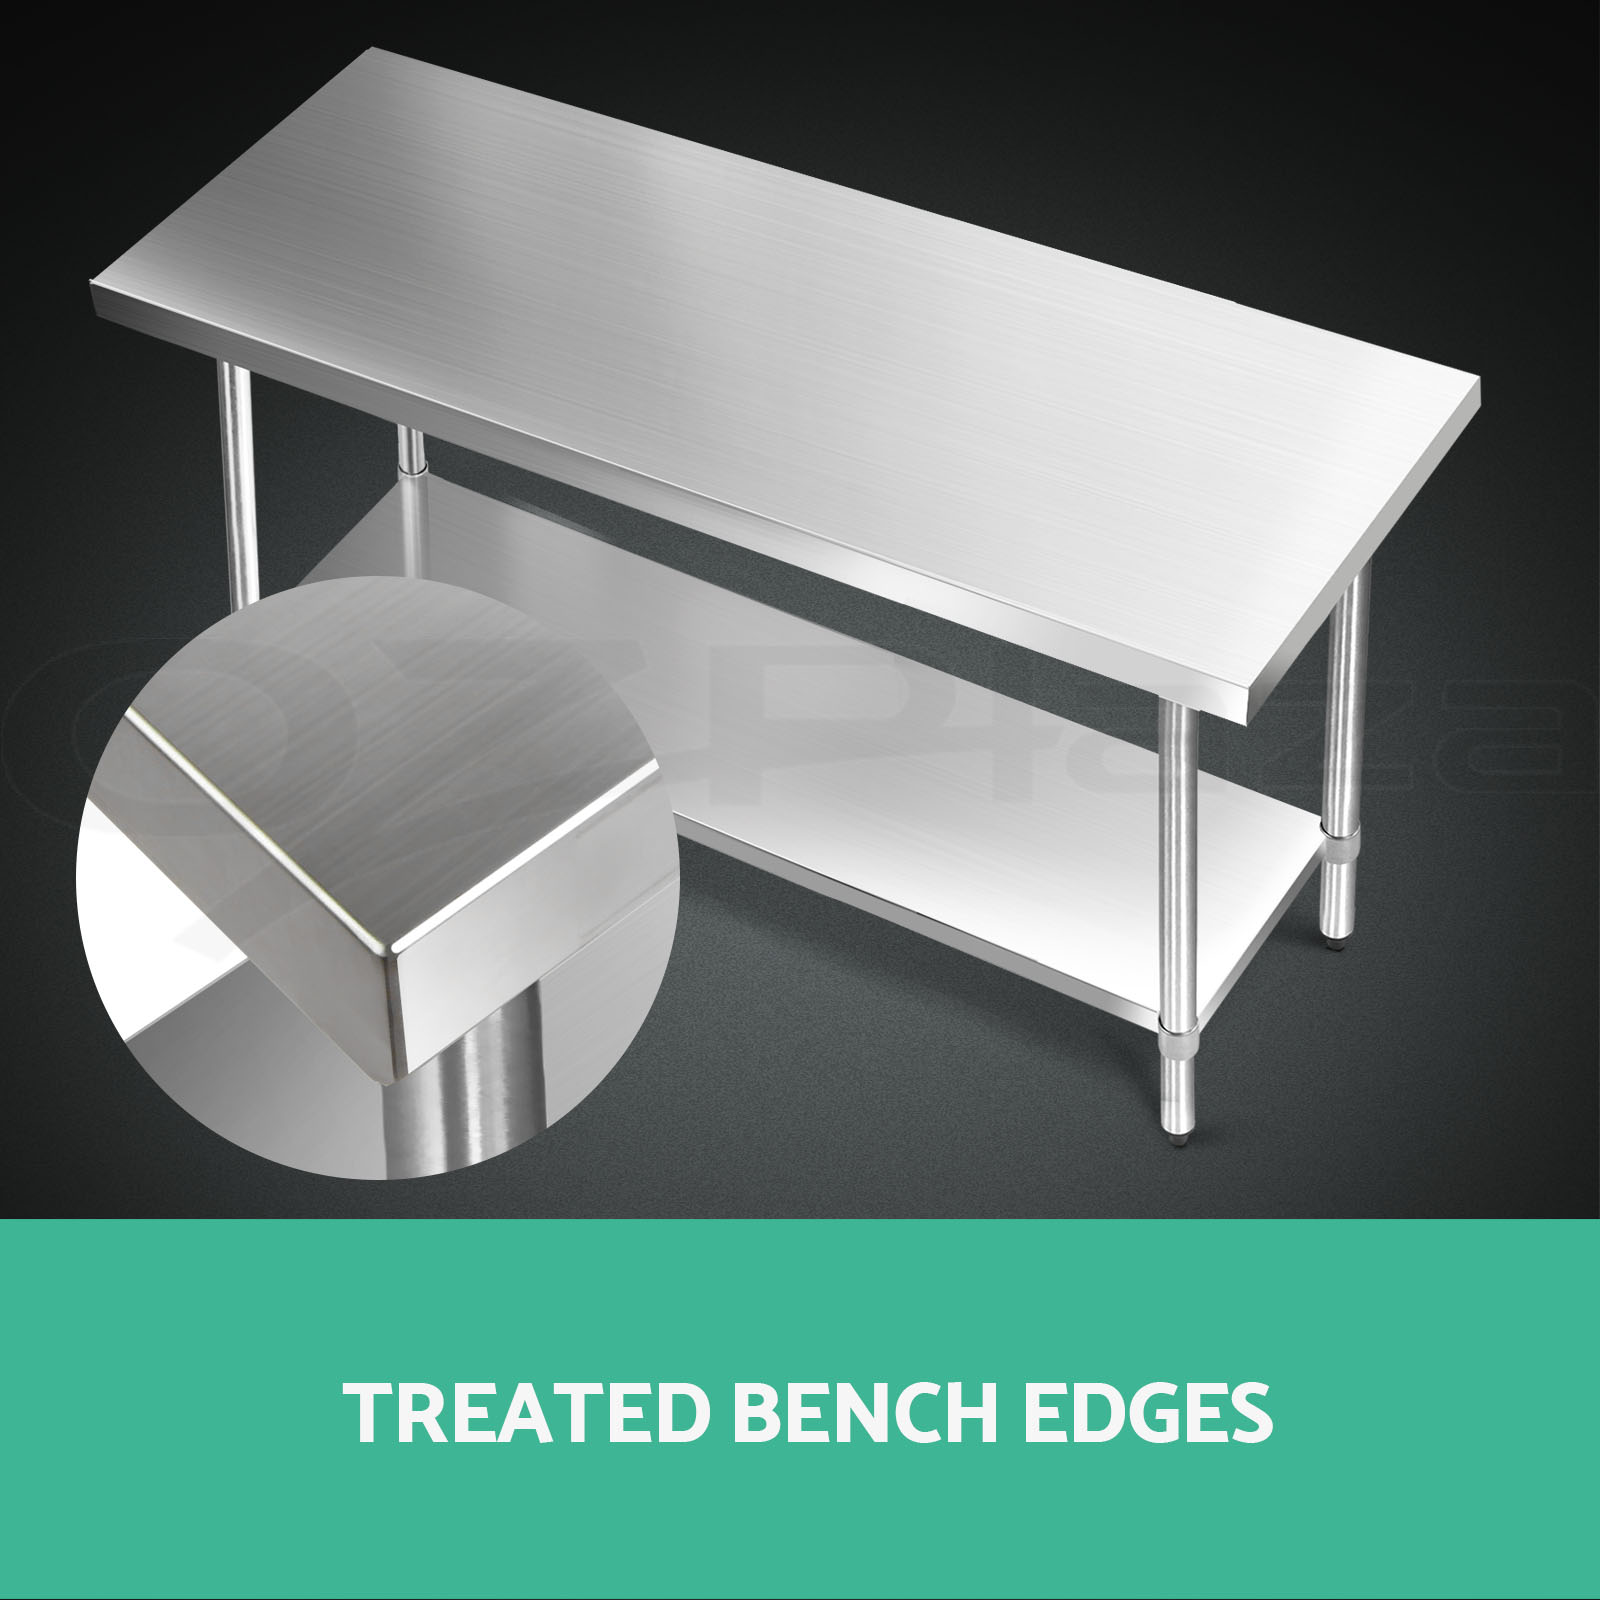 Cefito 304/430 Commercial Stainless Steel Kitchen Bench